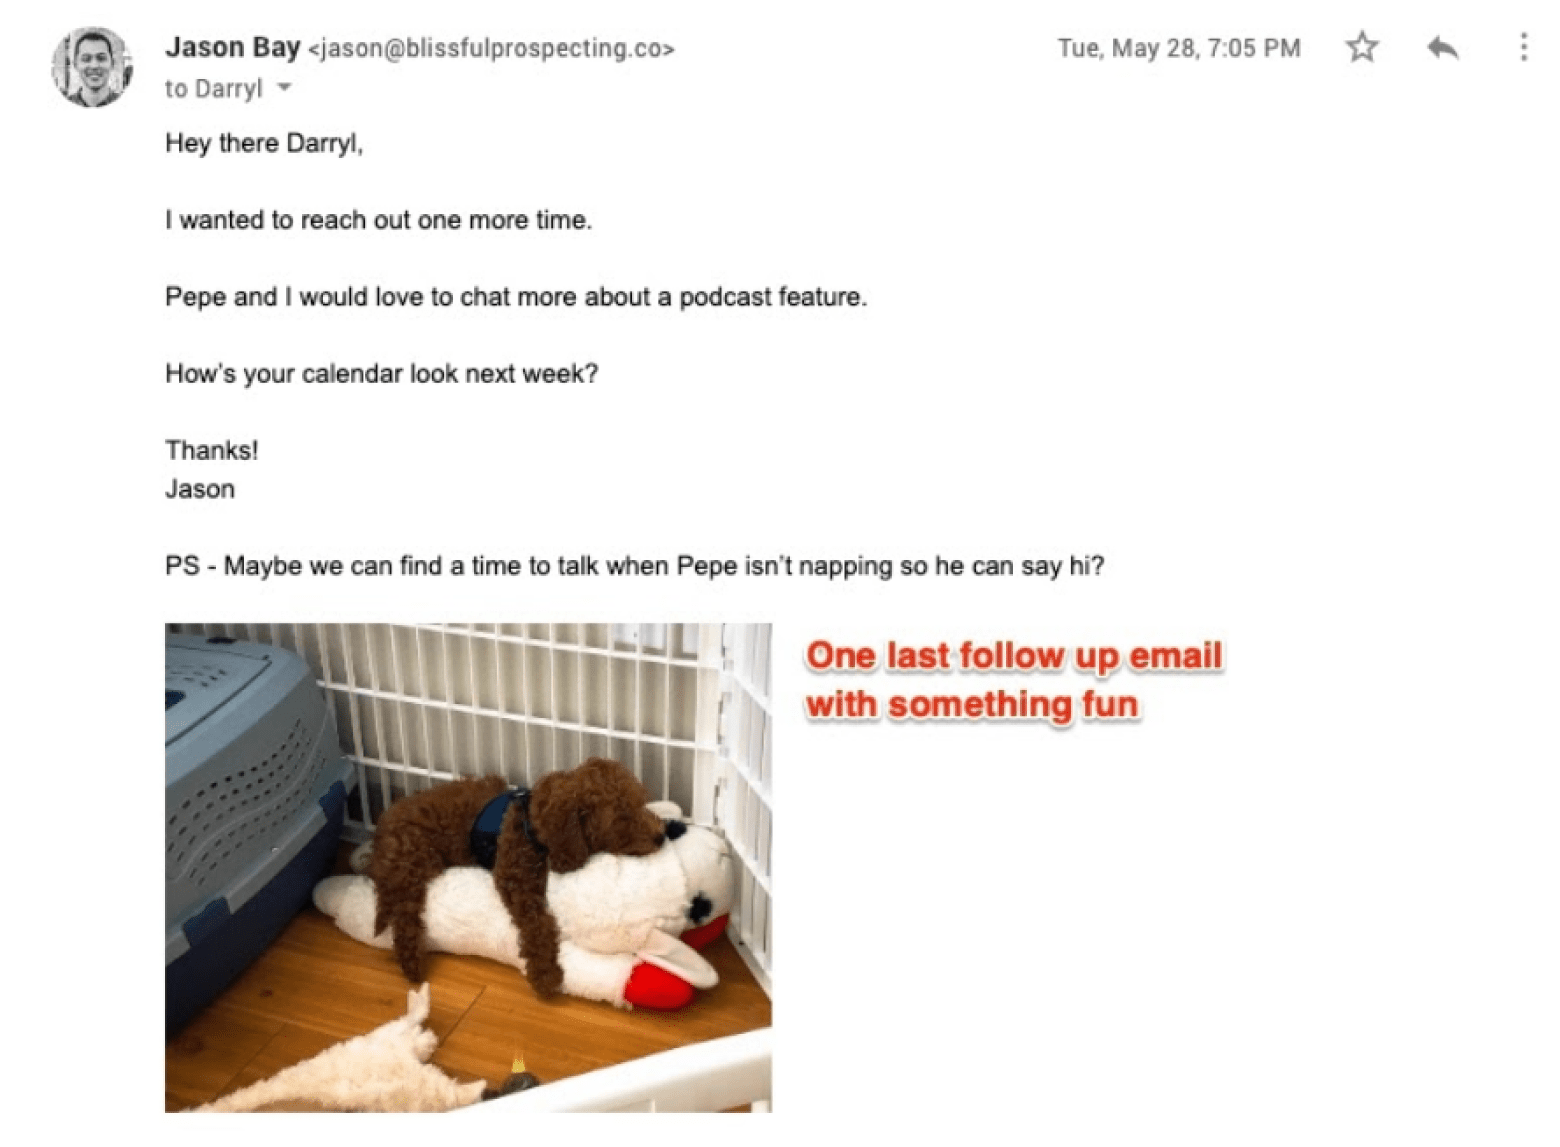 final follow up email